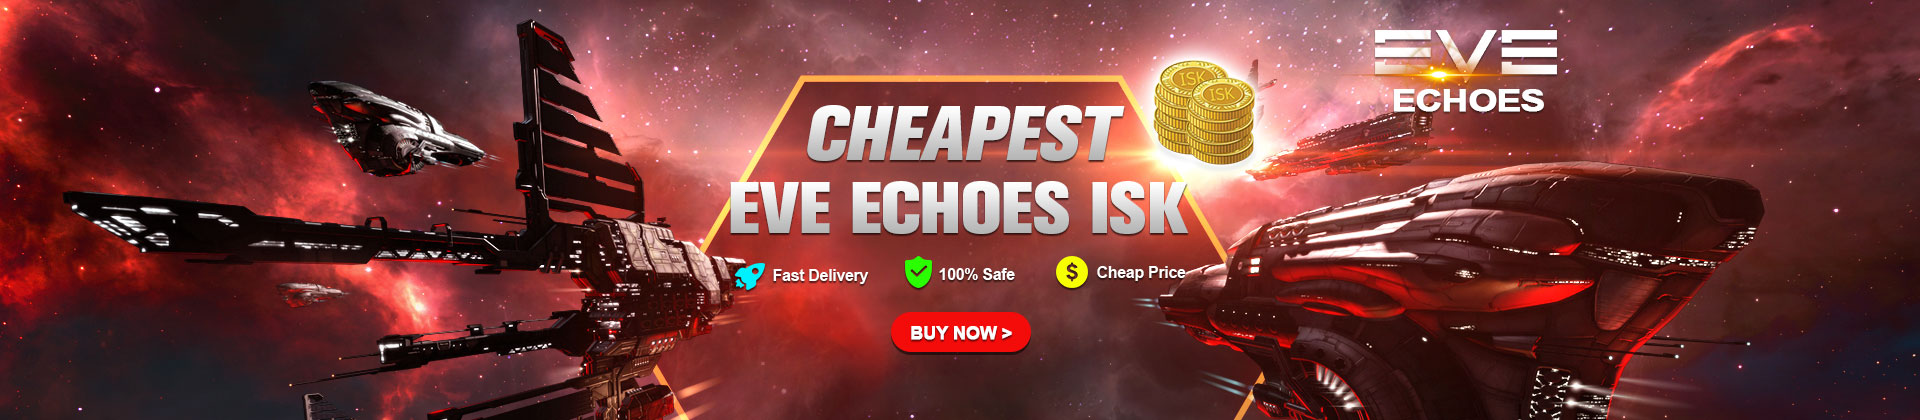 Cheap EVE Echoes ISK